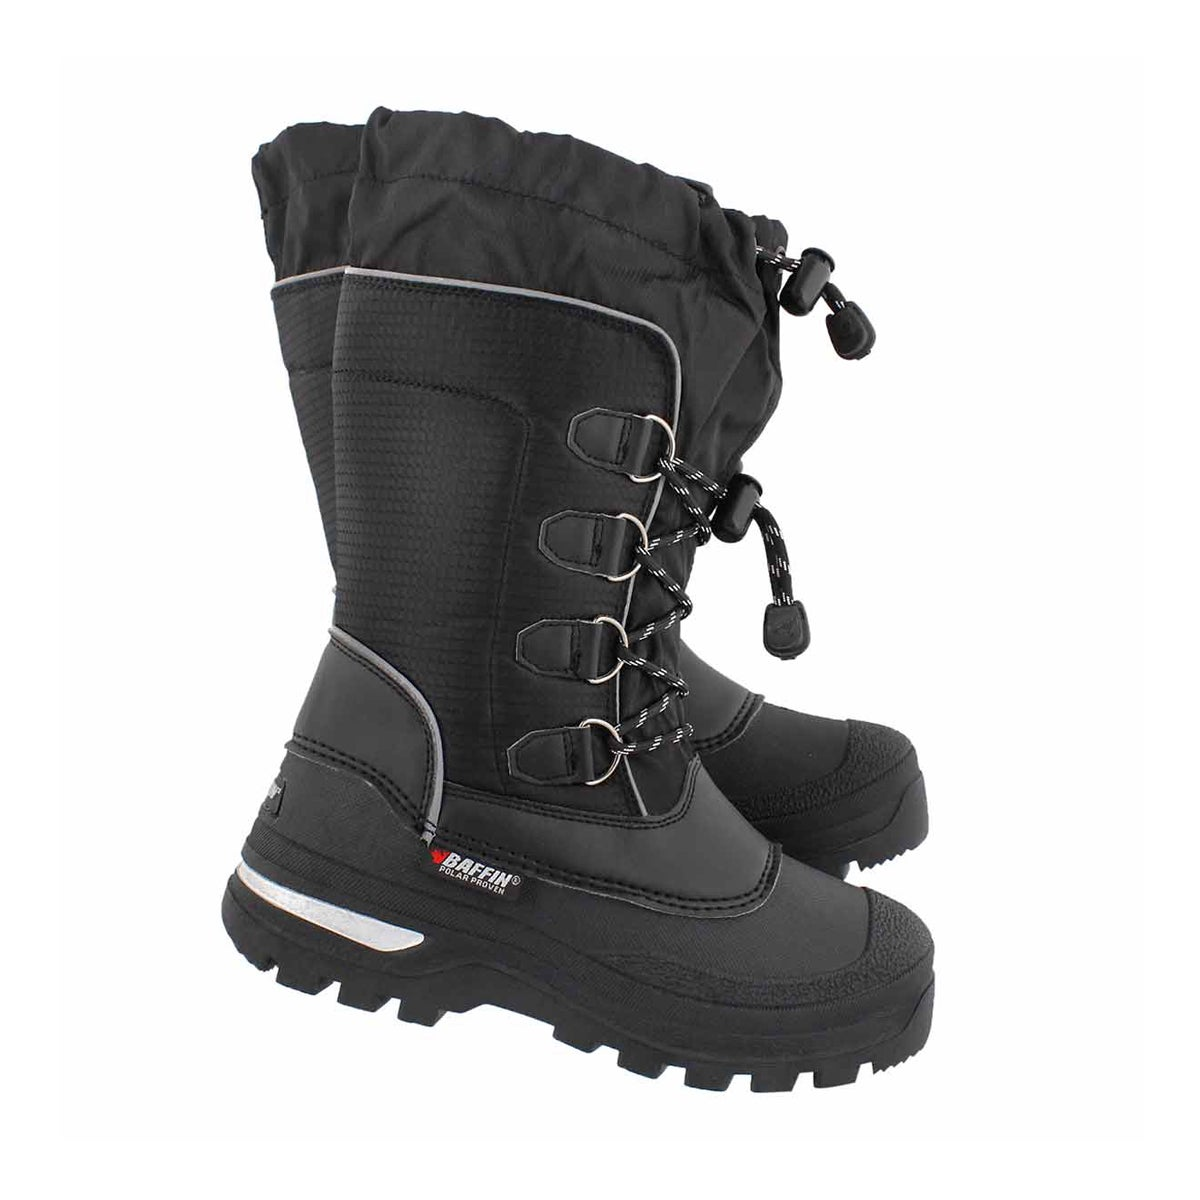 Bys Pinetree blk wtpf winter boot